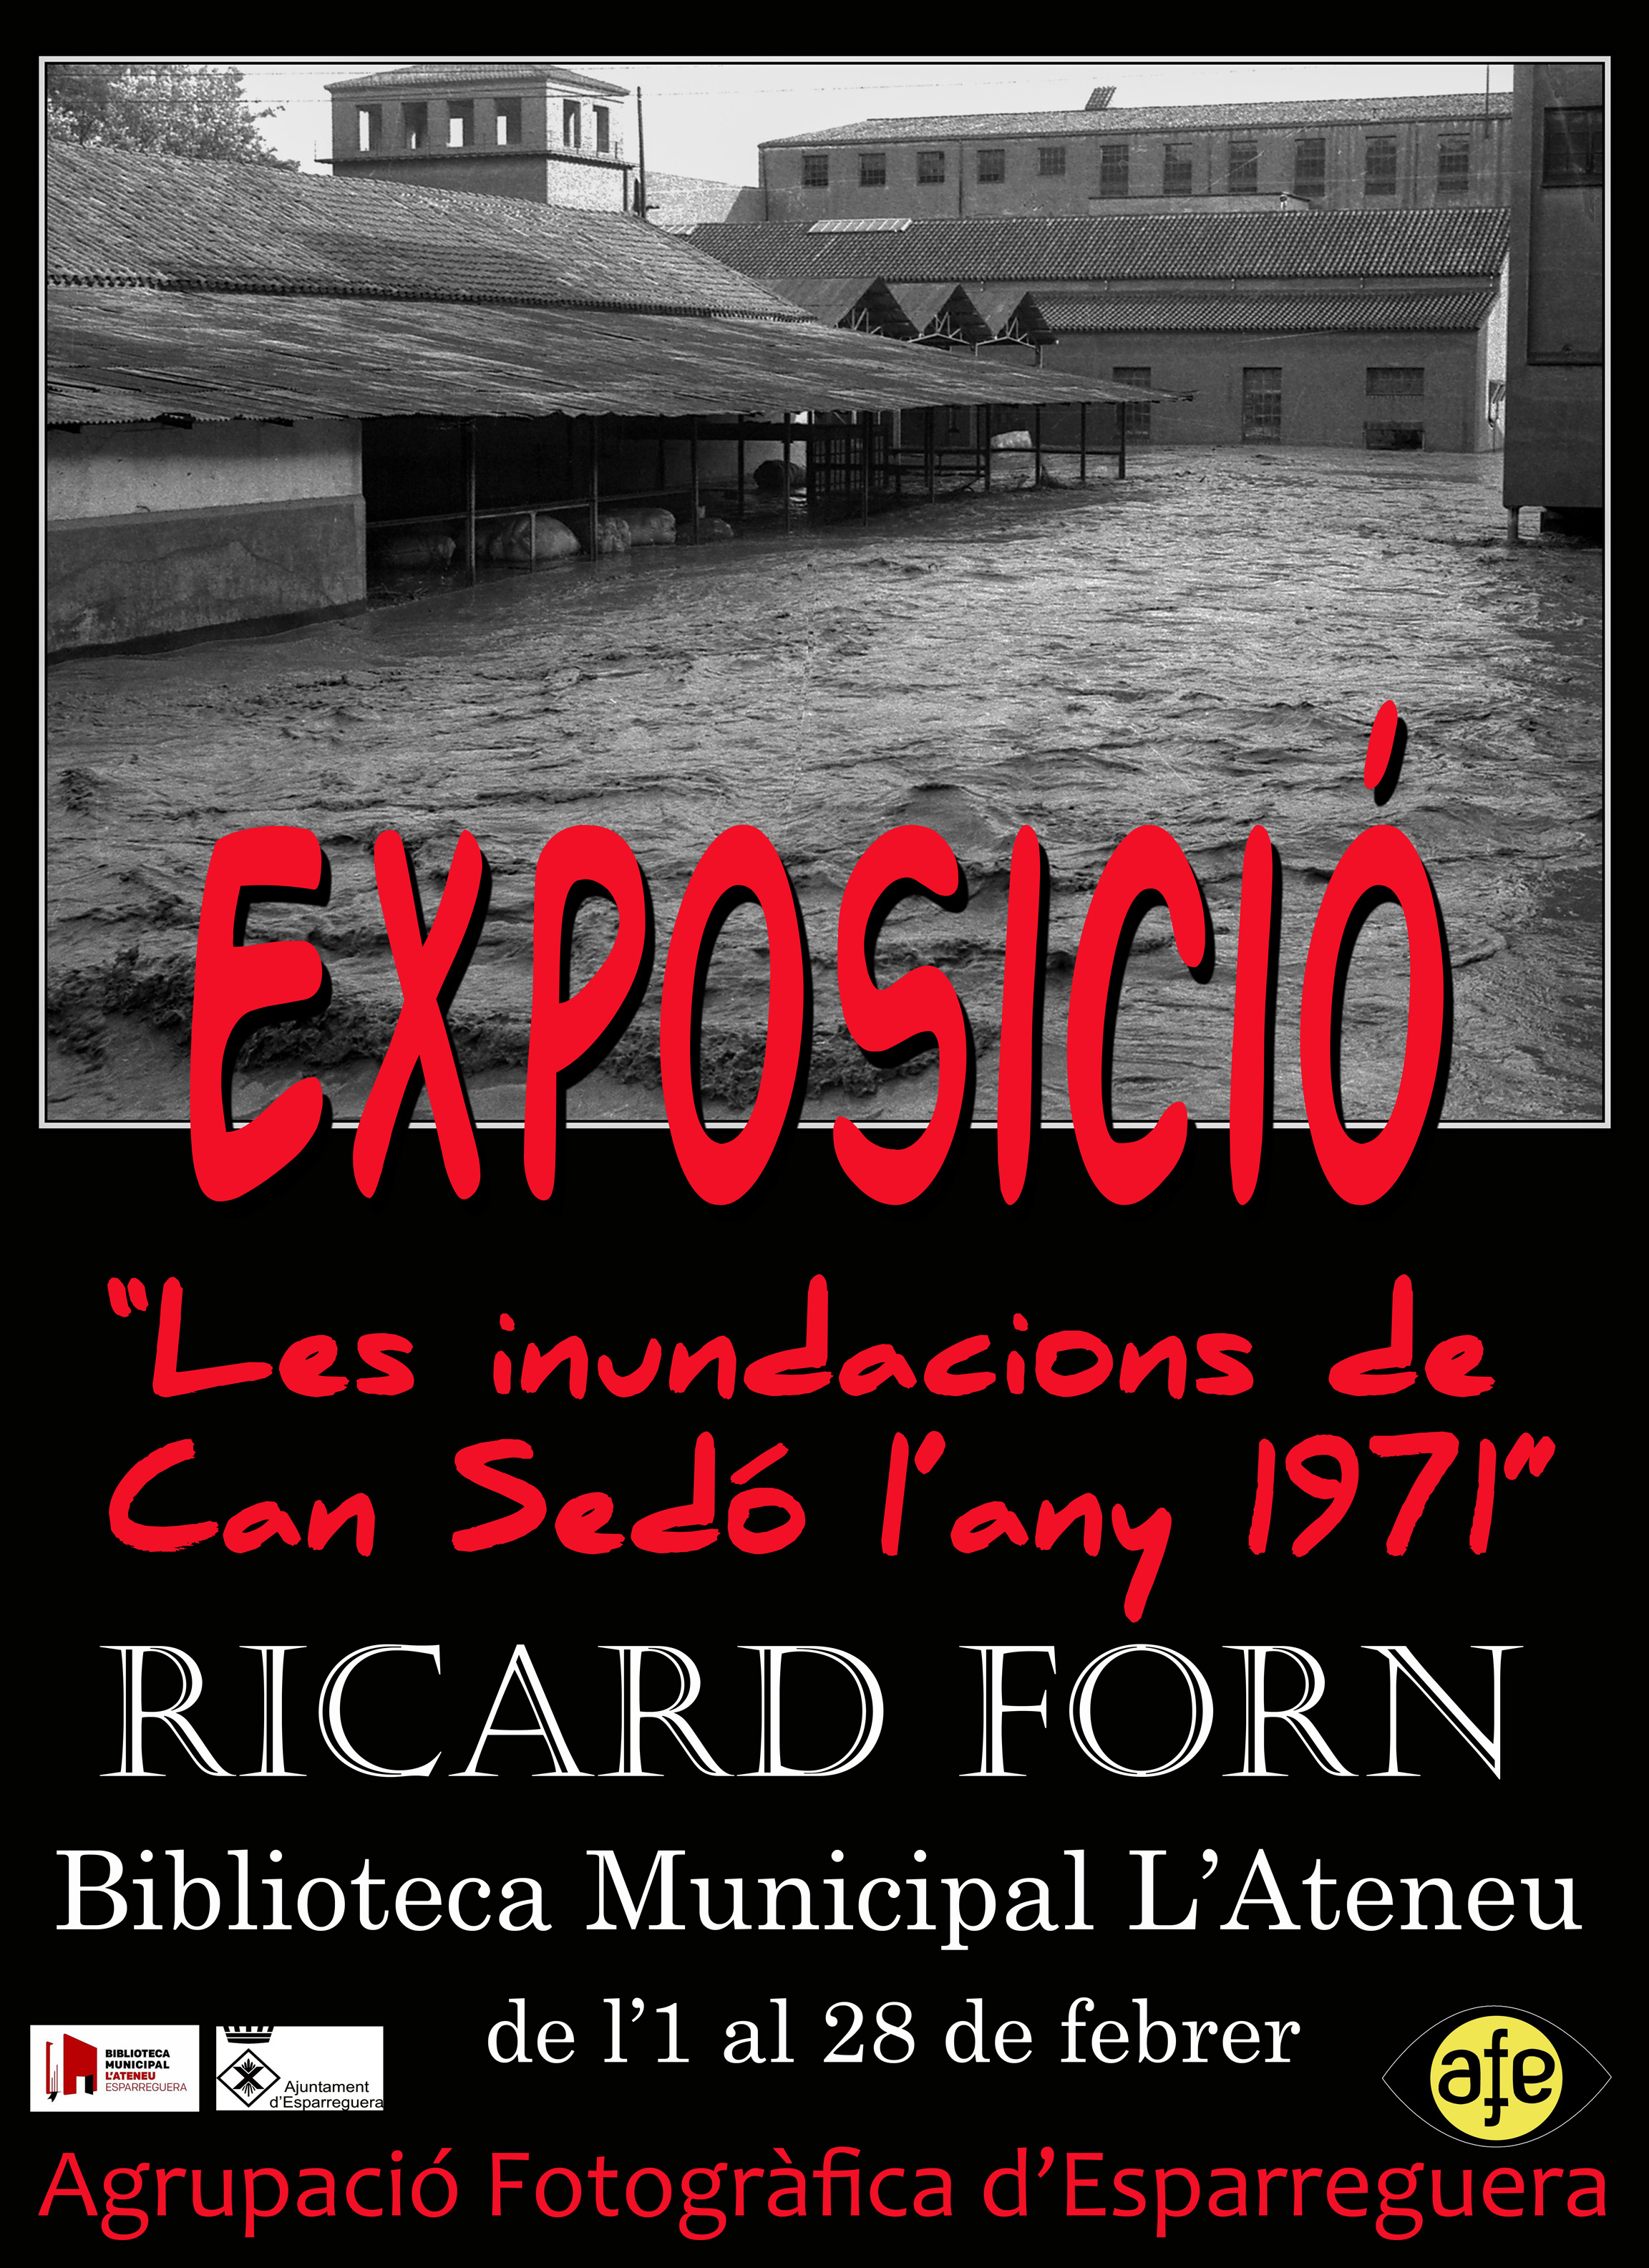 exposicio-ricard-forn